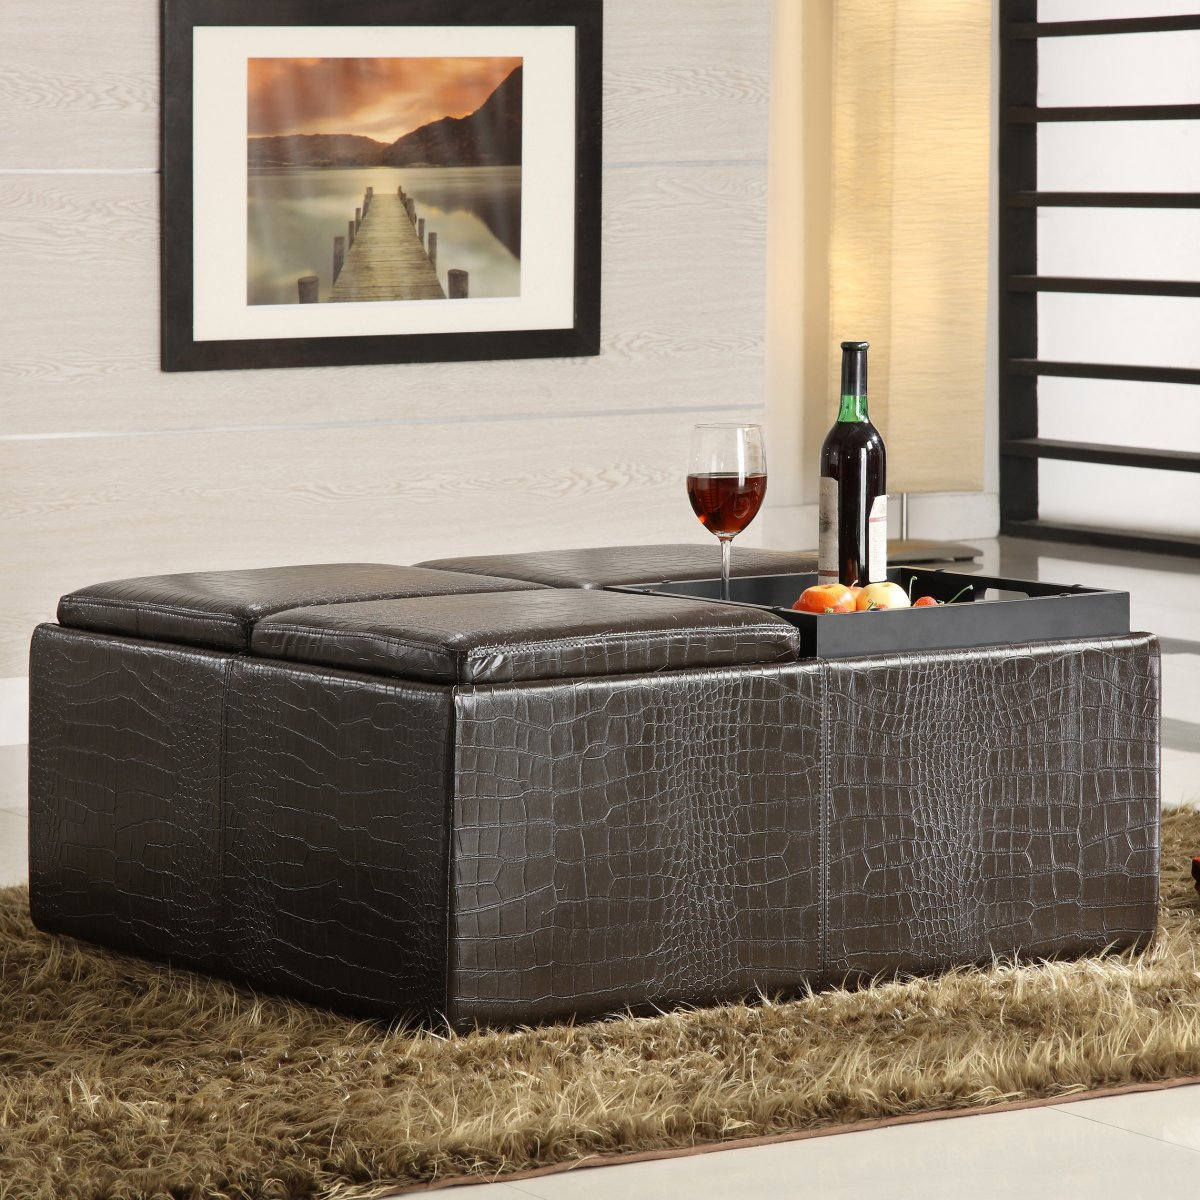 how to choose rug size for living room photos large square storage ottoman | homesfeed